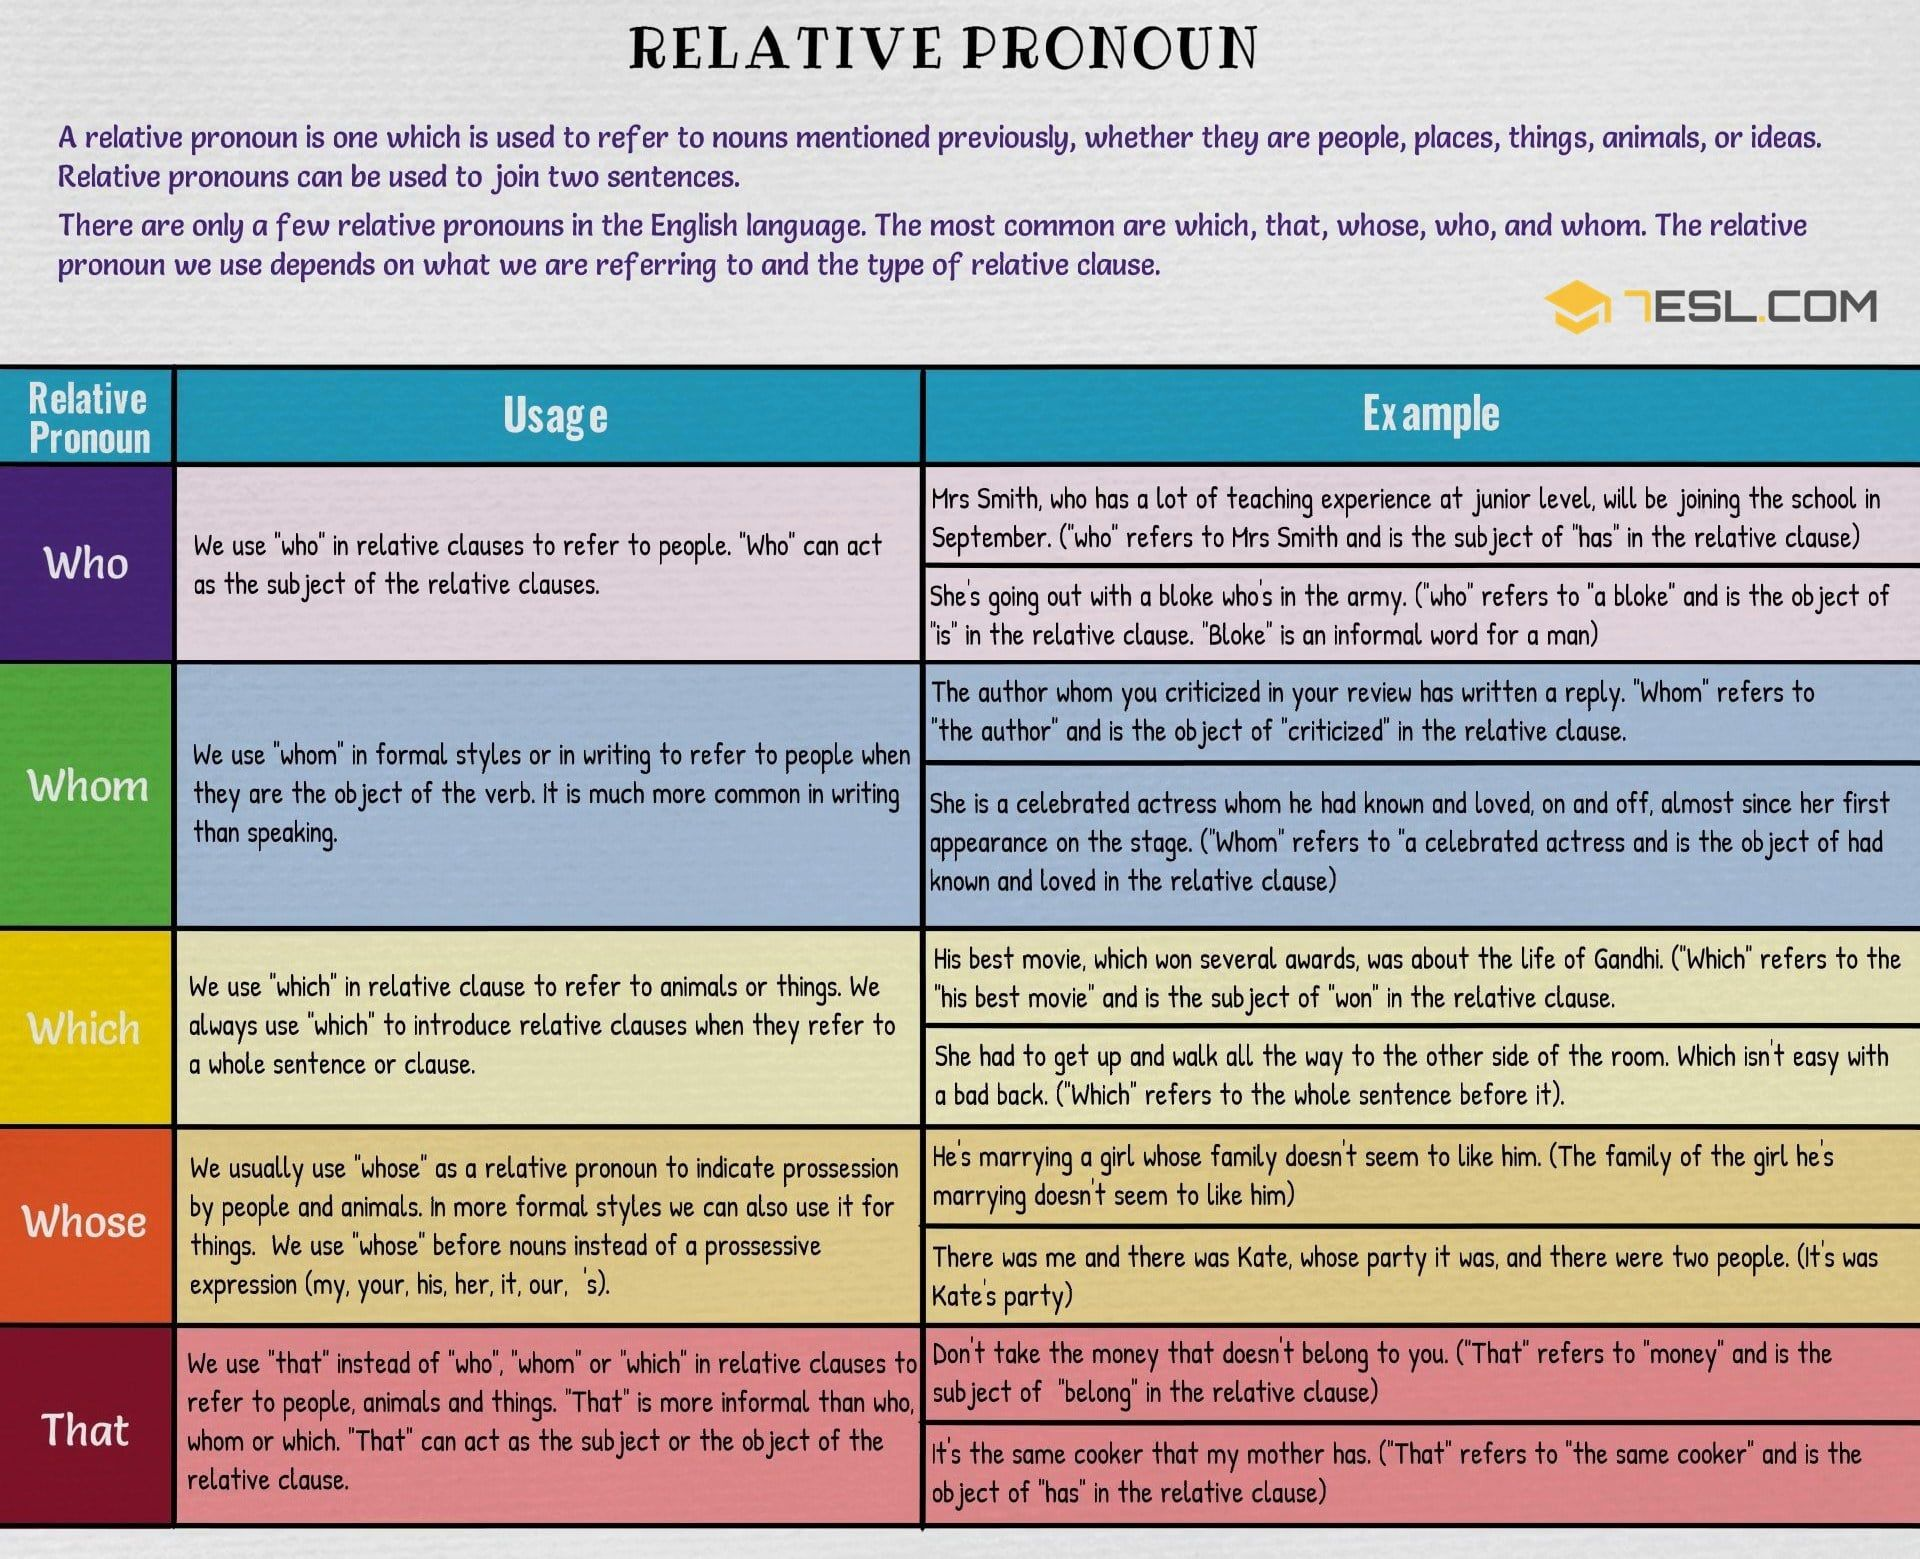 Relative Pronouns Useful List And Examples In English